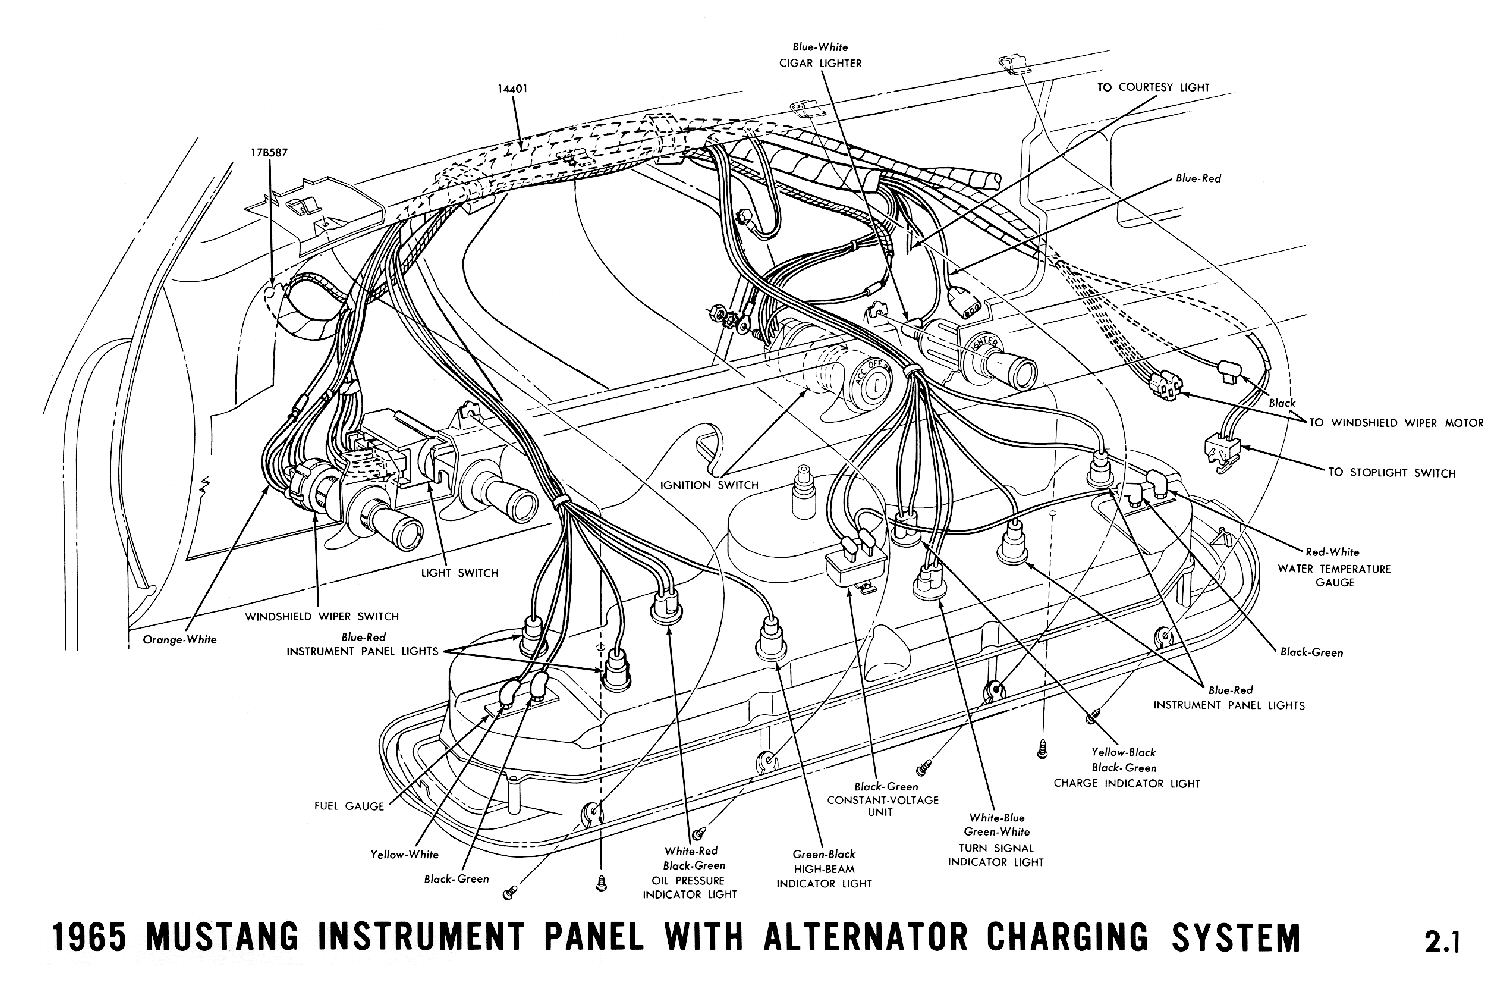 1965a 1965 mustang wiring diagrams average joe restoration 1966 mustang headlight wiring diagram at n-0.co